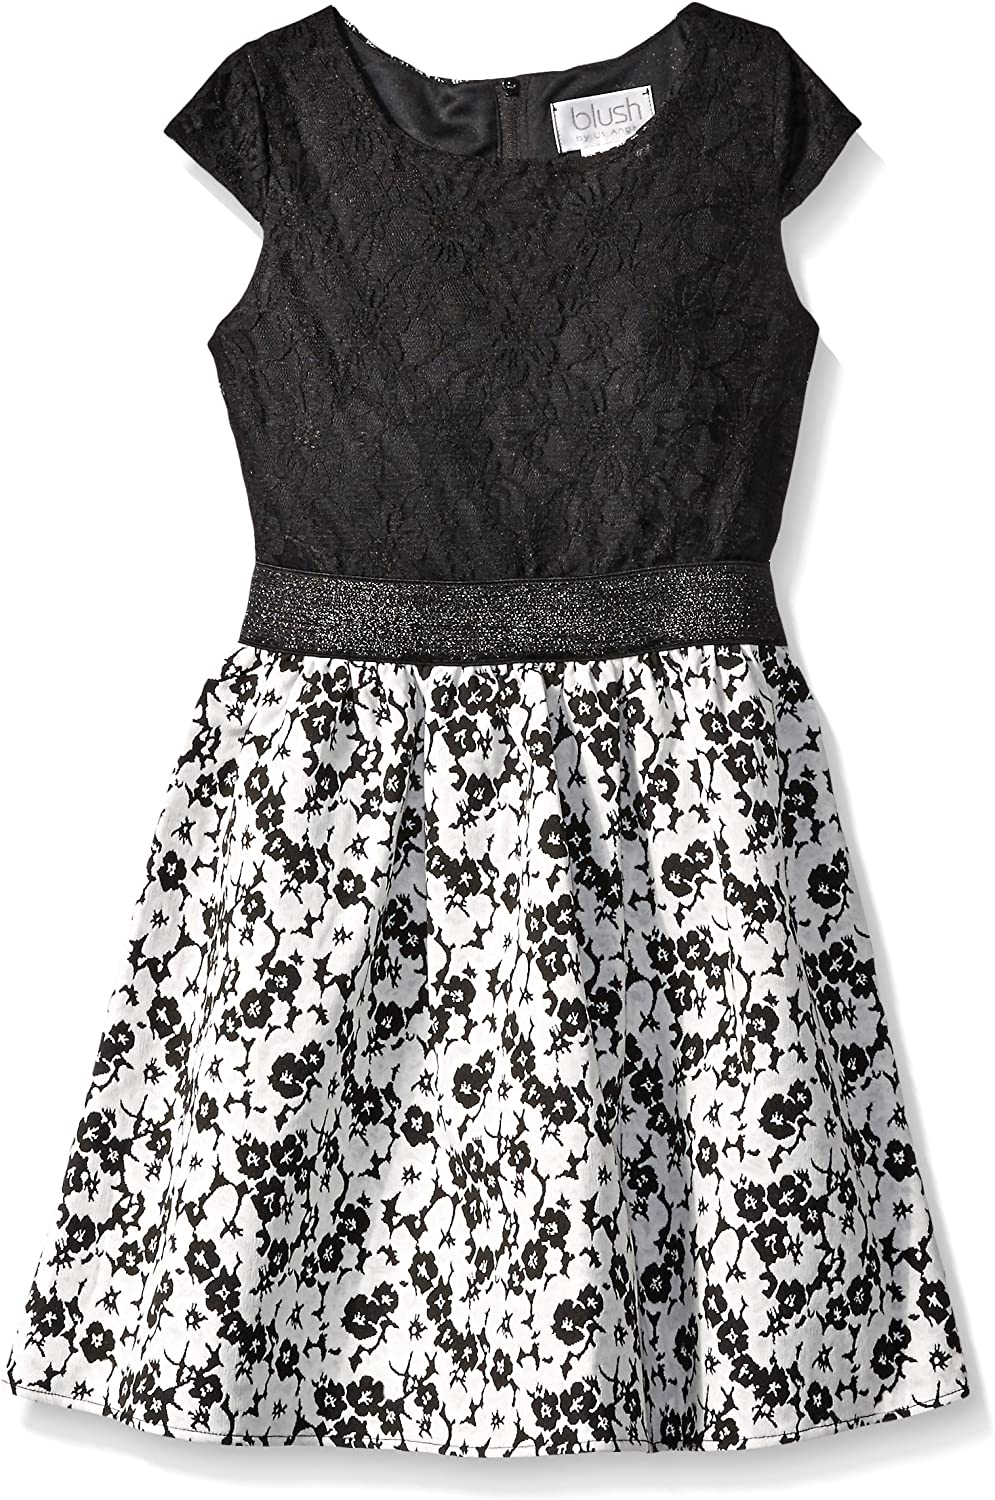 Blush by Us Angels Girls' Lace Floral Brocade Dress with Cap Sleeve and A Full Skirt